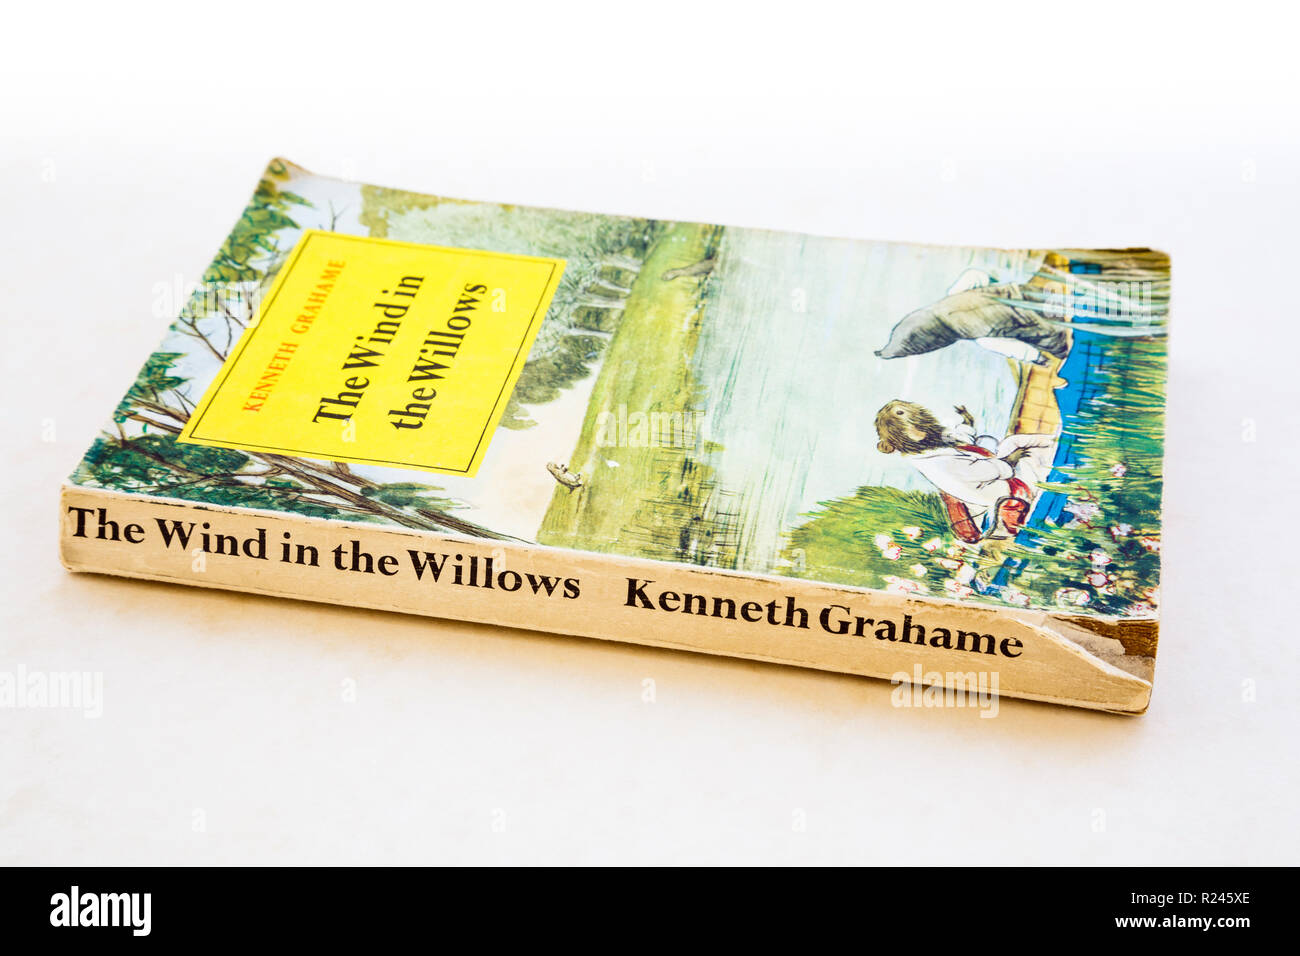 Illustrated front cover of old dog-eared paperback book with torn spine, The Wind in the Willows by Kenneth Grahame. 1961 edition by Methuen & Co Ltd. - Stock Image